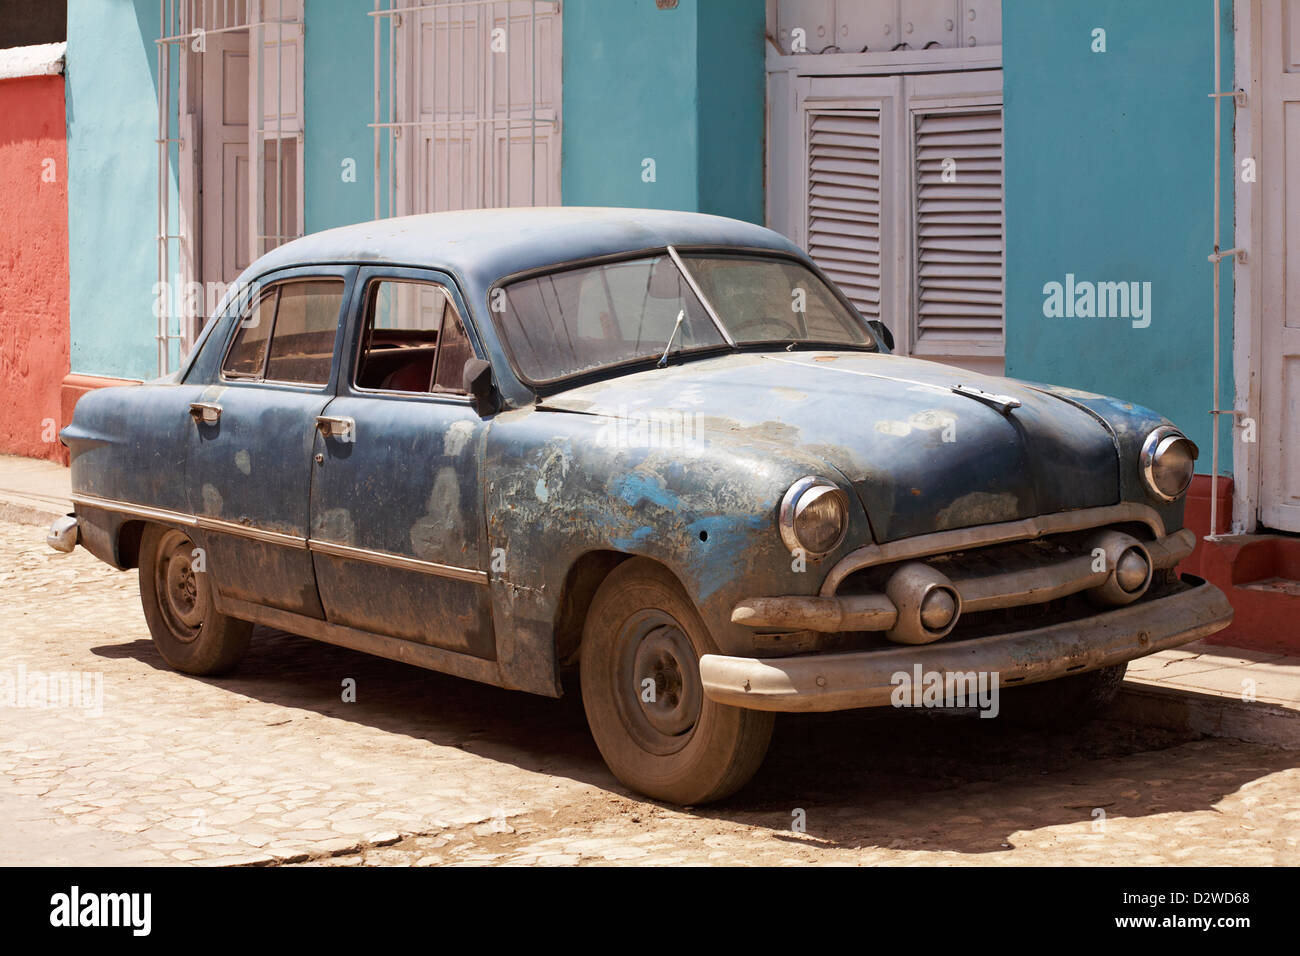 seen better days - classic car parked in street at Trinidad, Cuba, West Indies, Caribbean, Central America in March - Stock Image